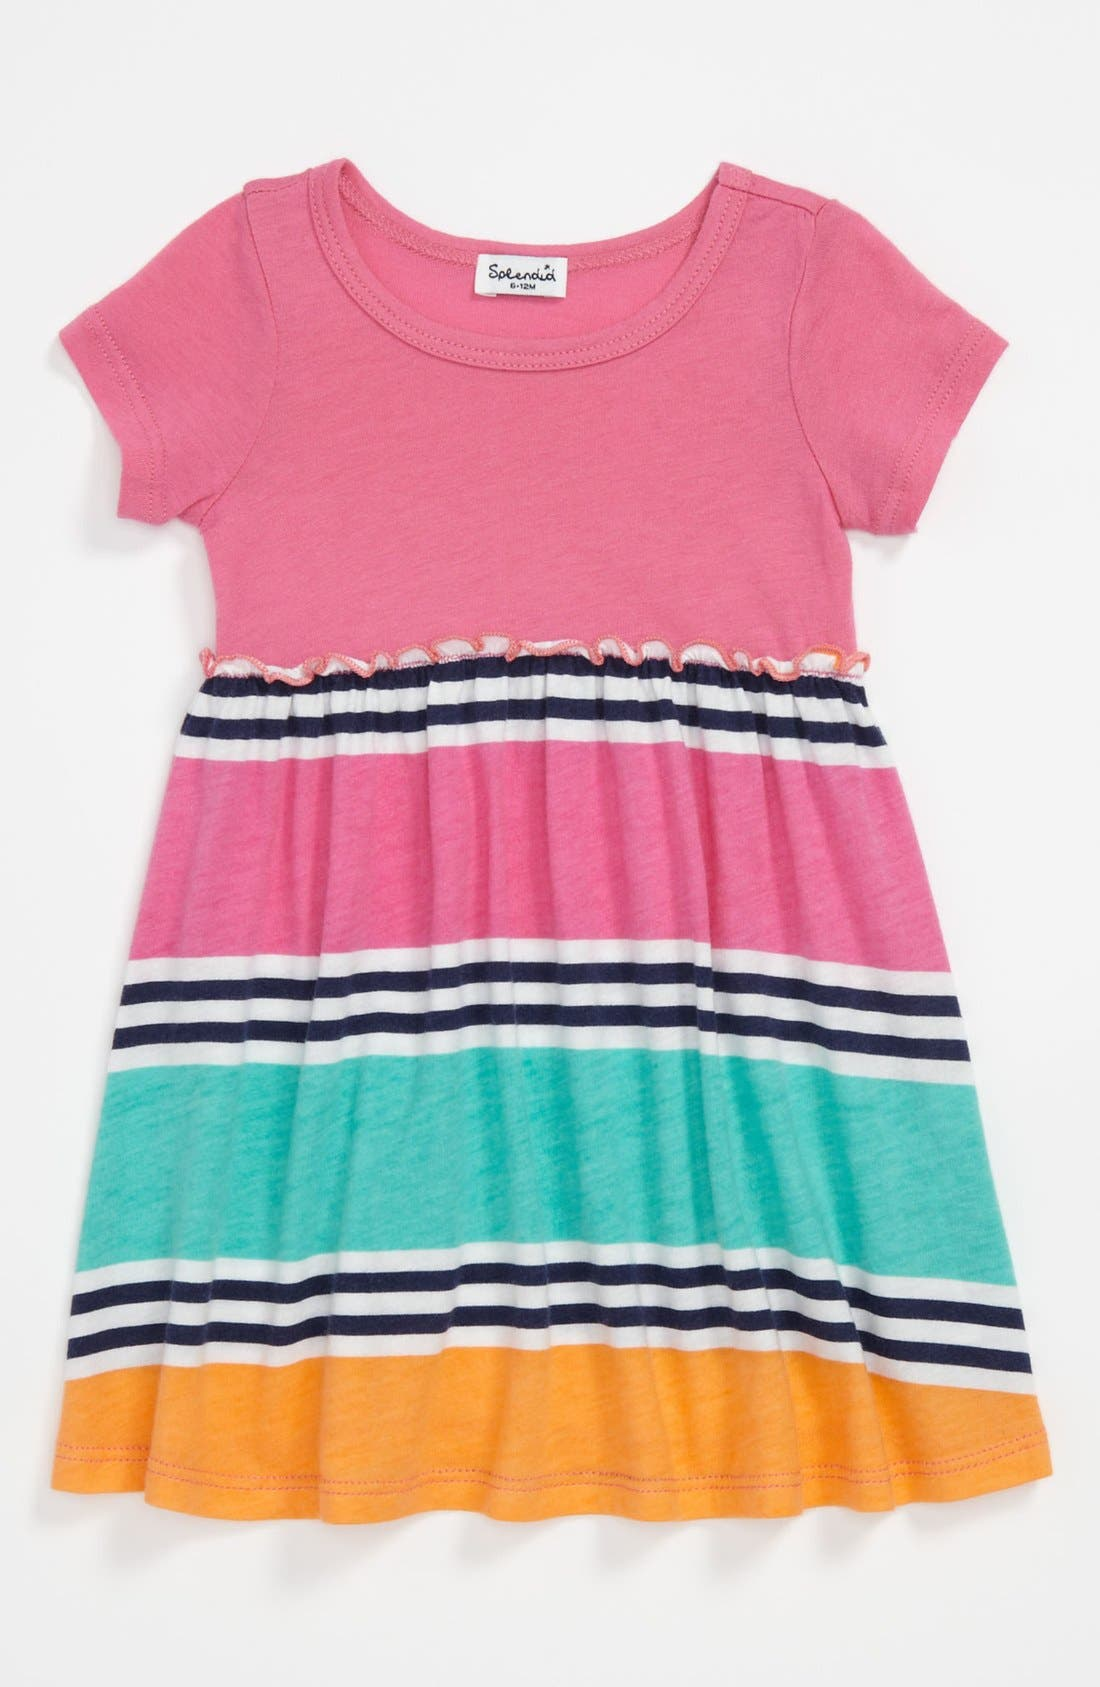 Alternate Image 1 Selected - Splendid 'Cabana Stripe' Dress (Baby)